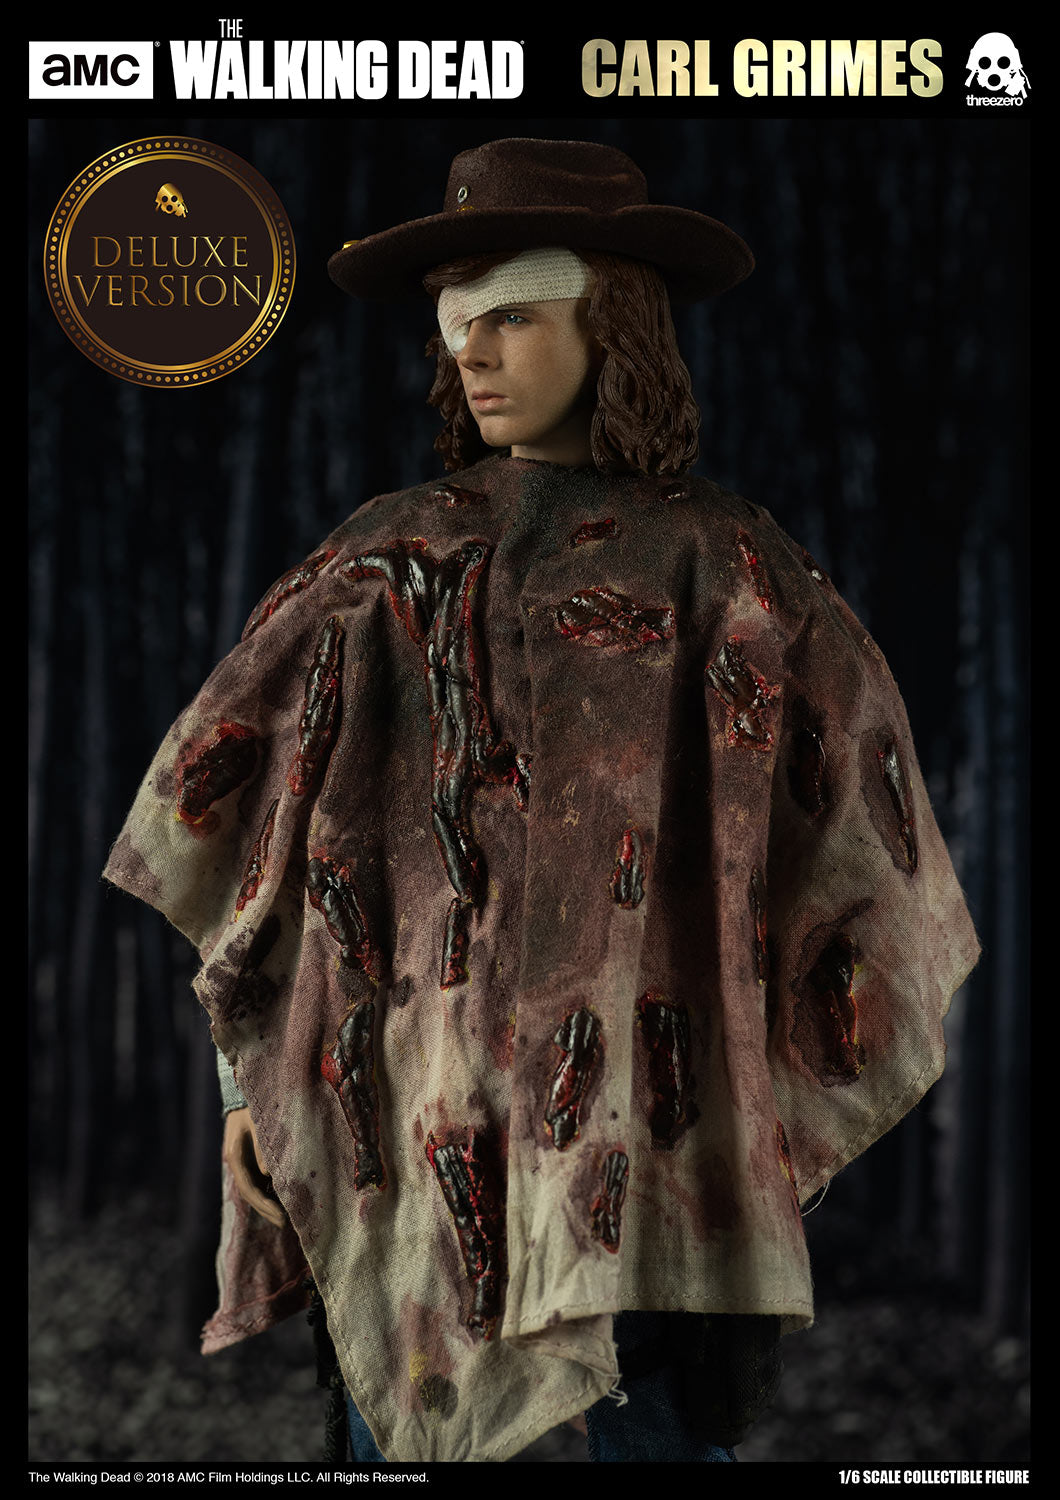 ThreeZero - The Walking Dead - Carl Grimes (1/6 Scale) (Deluxe Version)